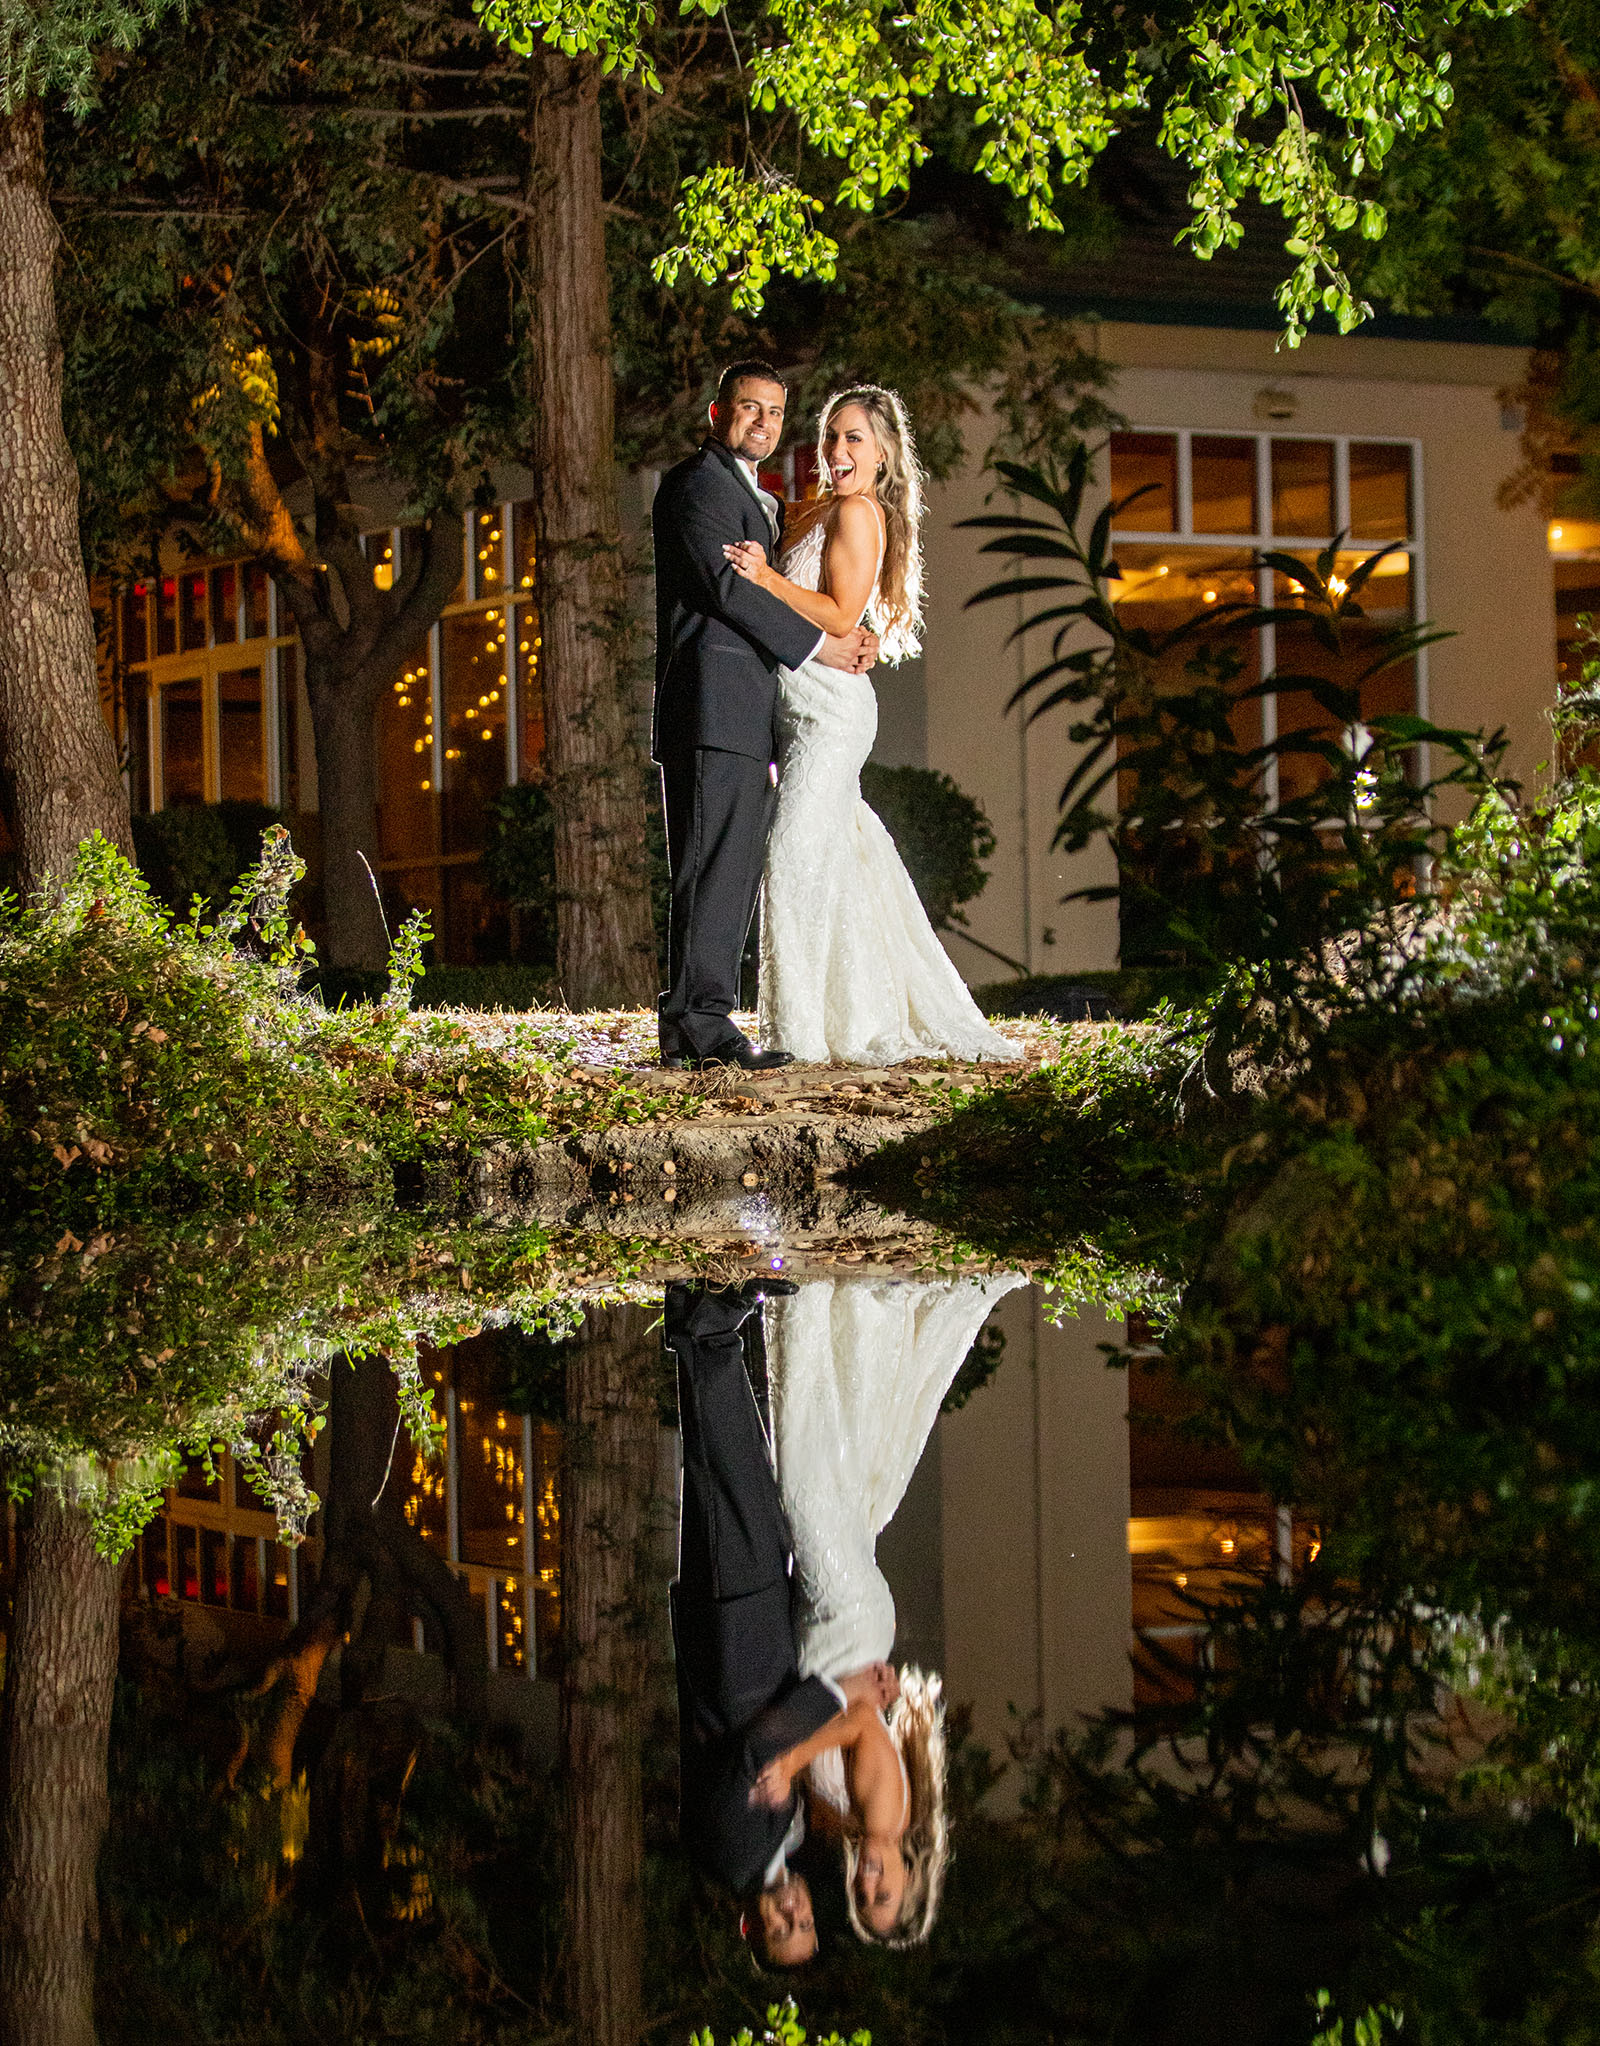 Gorgeous outdoor photo opportunities - Brentwood - Brentwood, California - Contra Costa County - Wedgewood Weddings